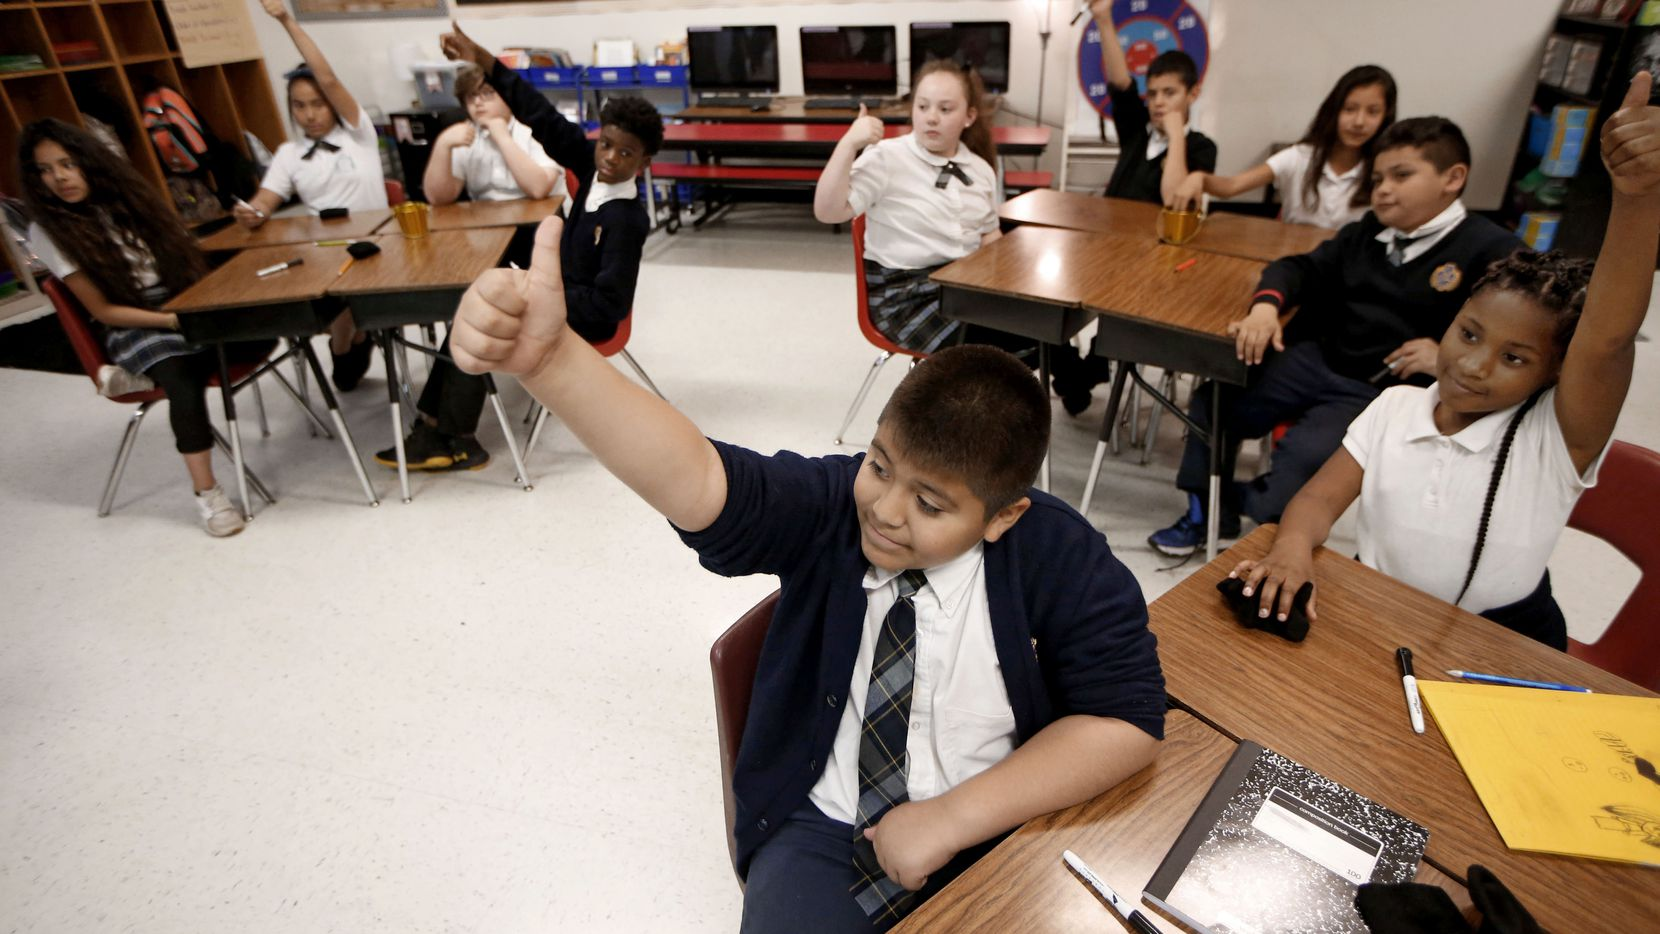 Adrian Torres gives the thumbs up to a correct answer during his fifth grade math class at Annie Webb Blanton Elementary in Dallas on May 17, 2018. Blanton Elementary is one of Dallas ISD's ACE schools where extra money and resources have been poured in to bolster struggling campuses.